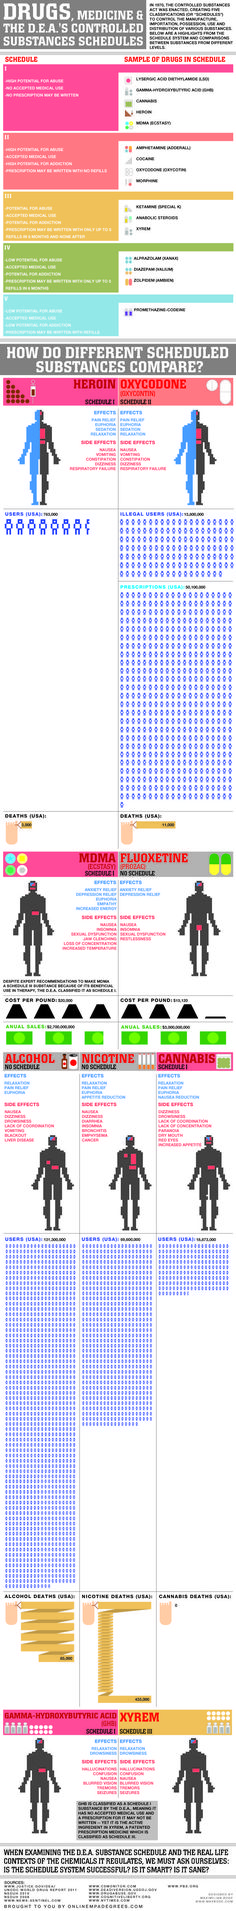 Drugs, Medicine and the D.E.A.'s Controlled Substance Schedules Infograph